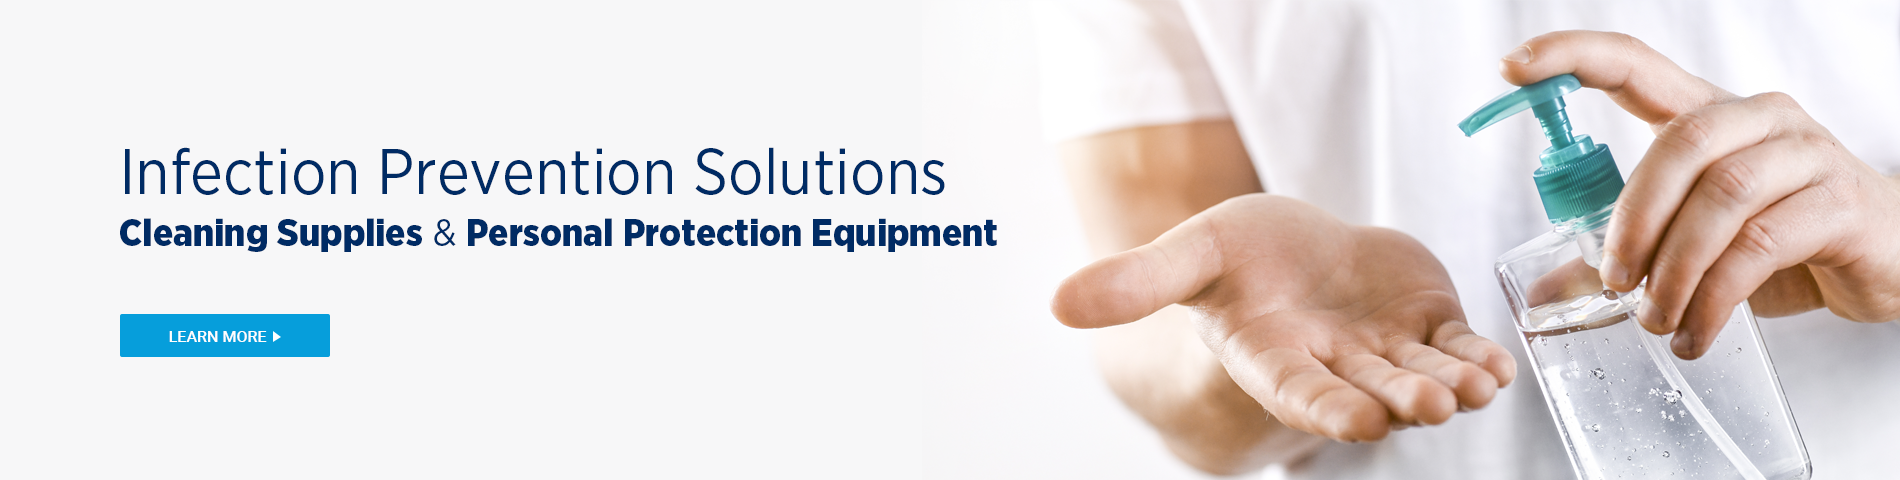 Infection Prevention Solutions